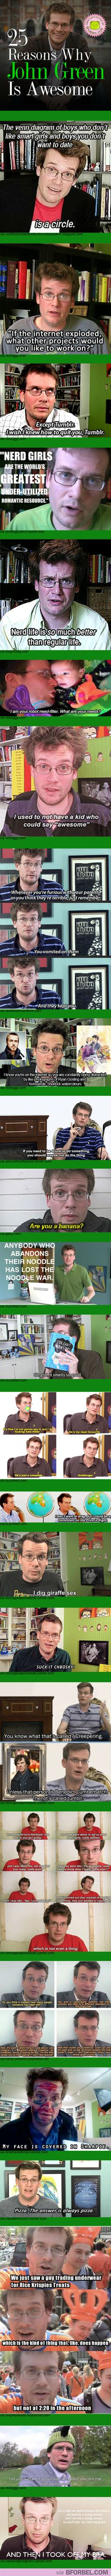 25 Reasons Why John Green Is Awesome… not that this begins to cover his awesomeness